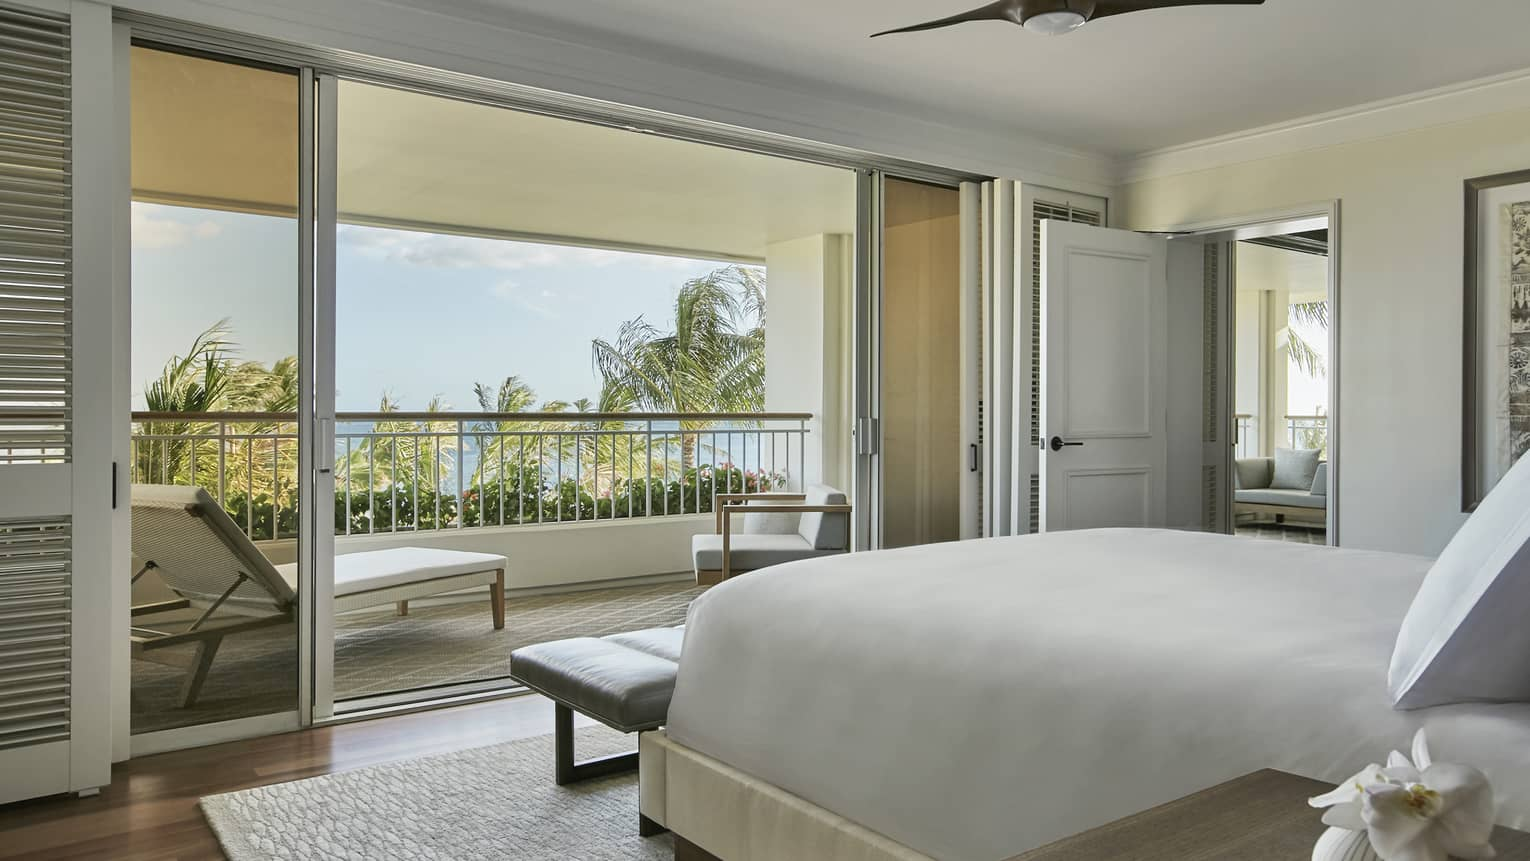 Penthouse Suite bedroom, end of bed, bench by sliding glass balcony doors